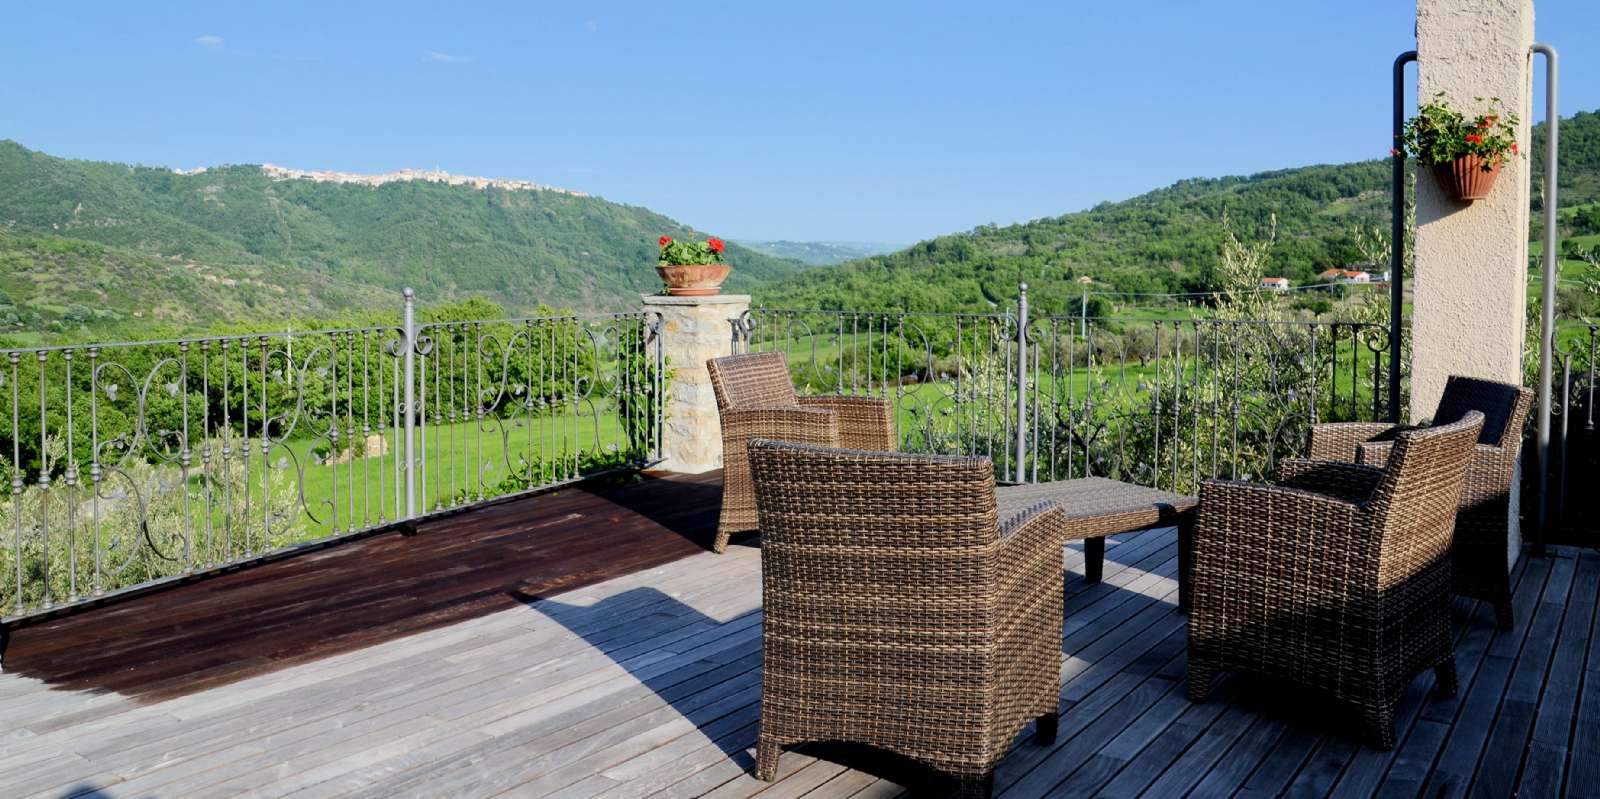 View of Molise's endearing mountain landscape